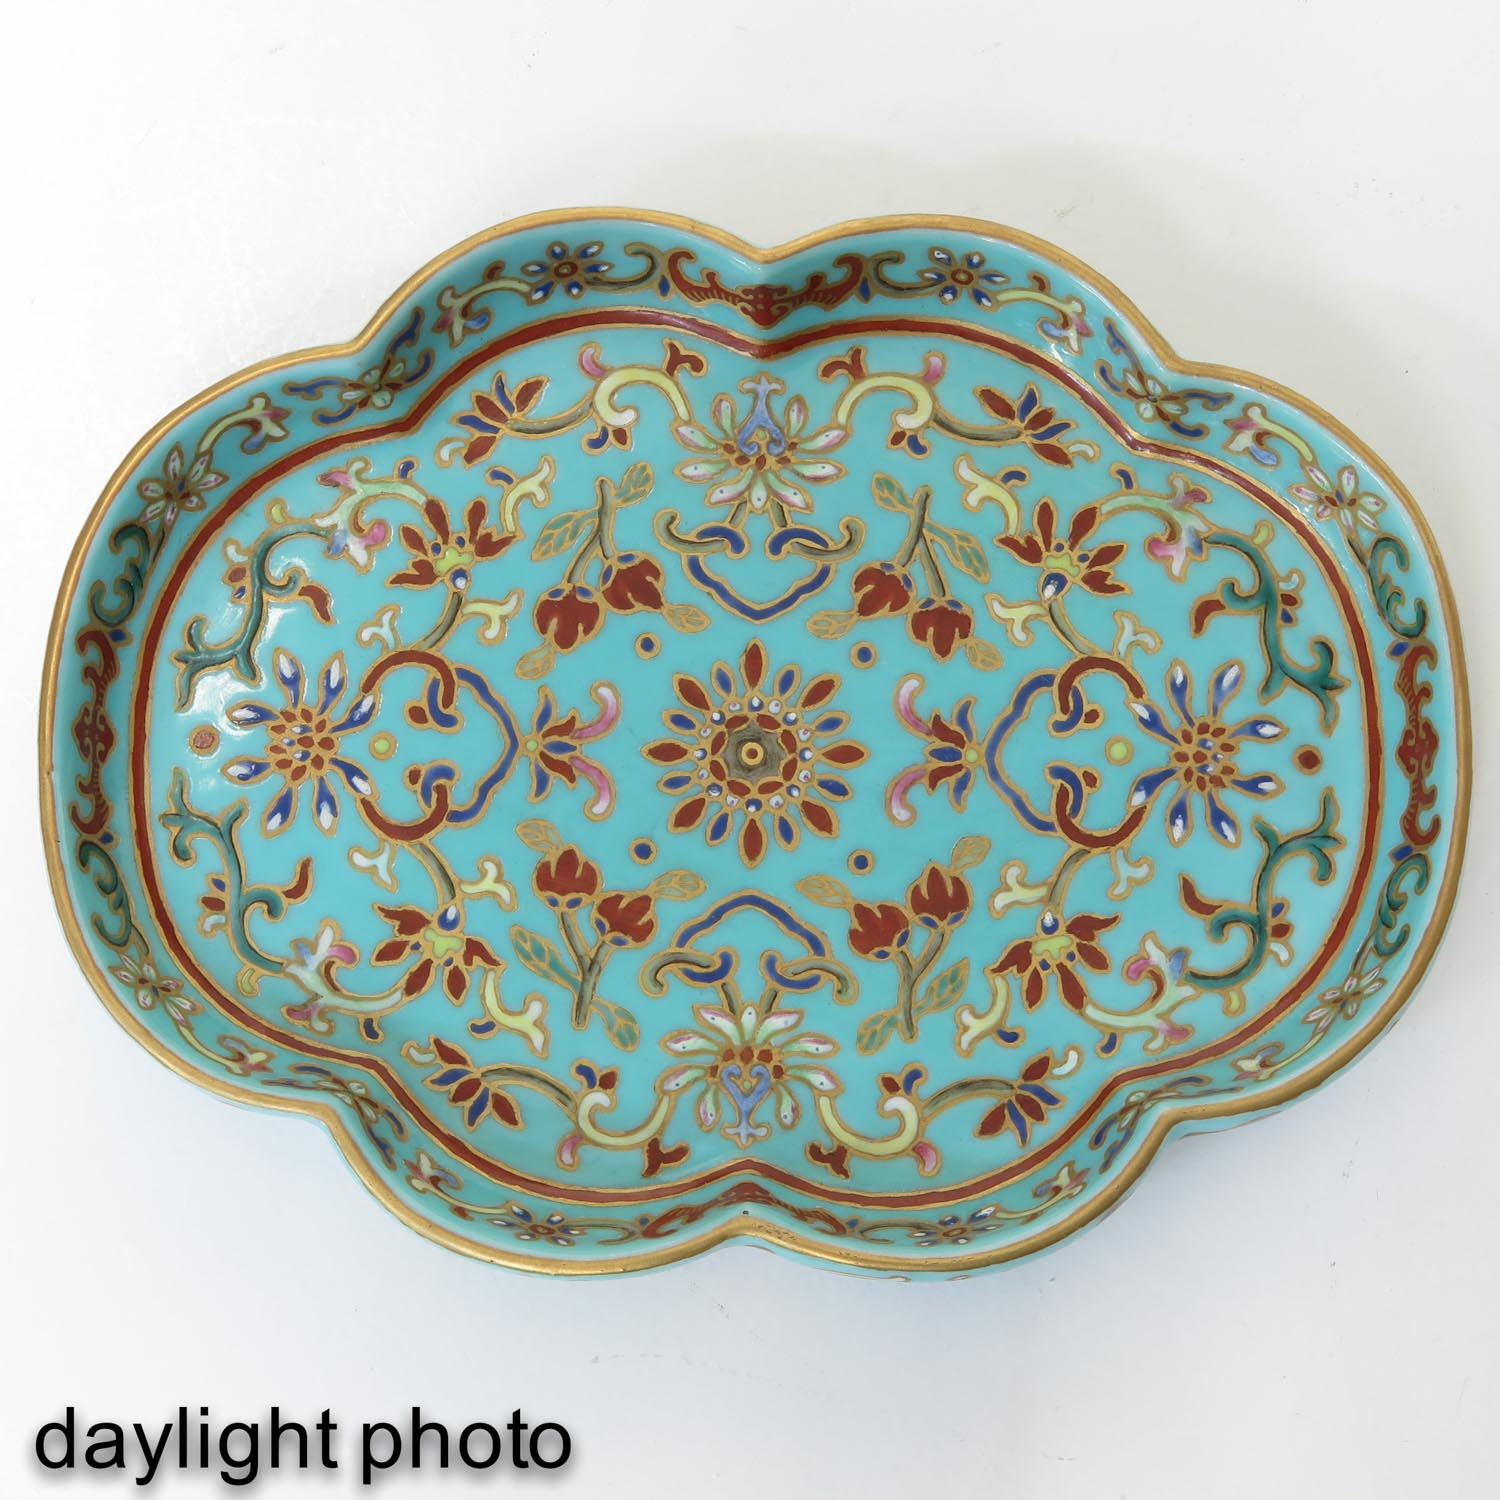 A Small Polychrome Tray - Image 5 of 8